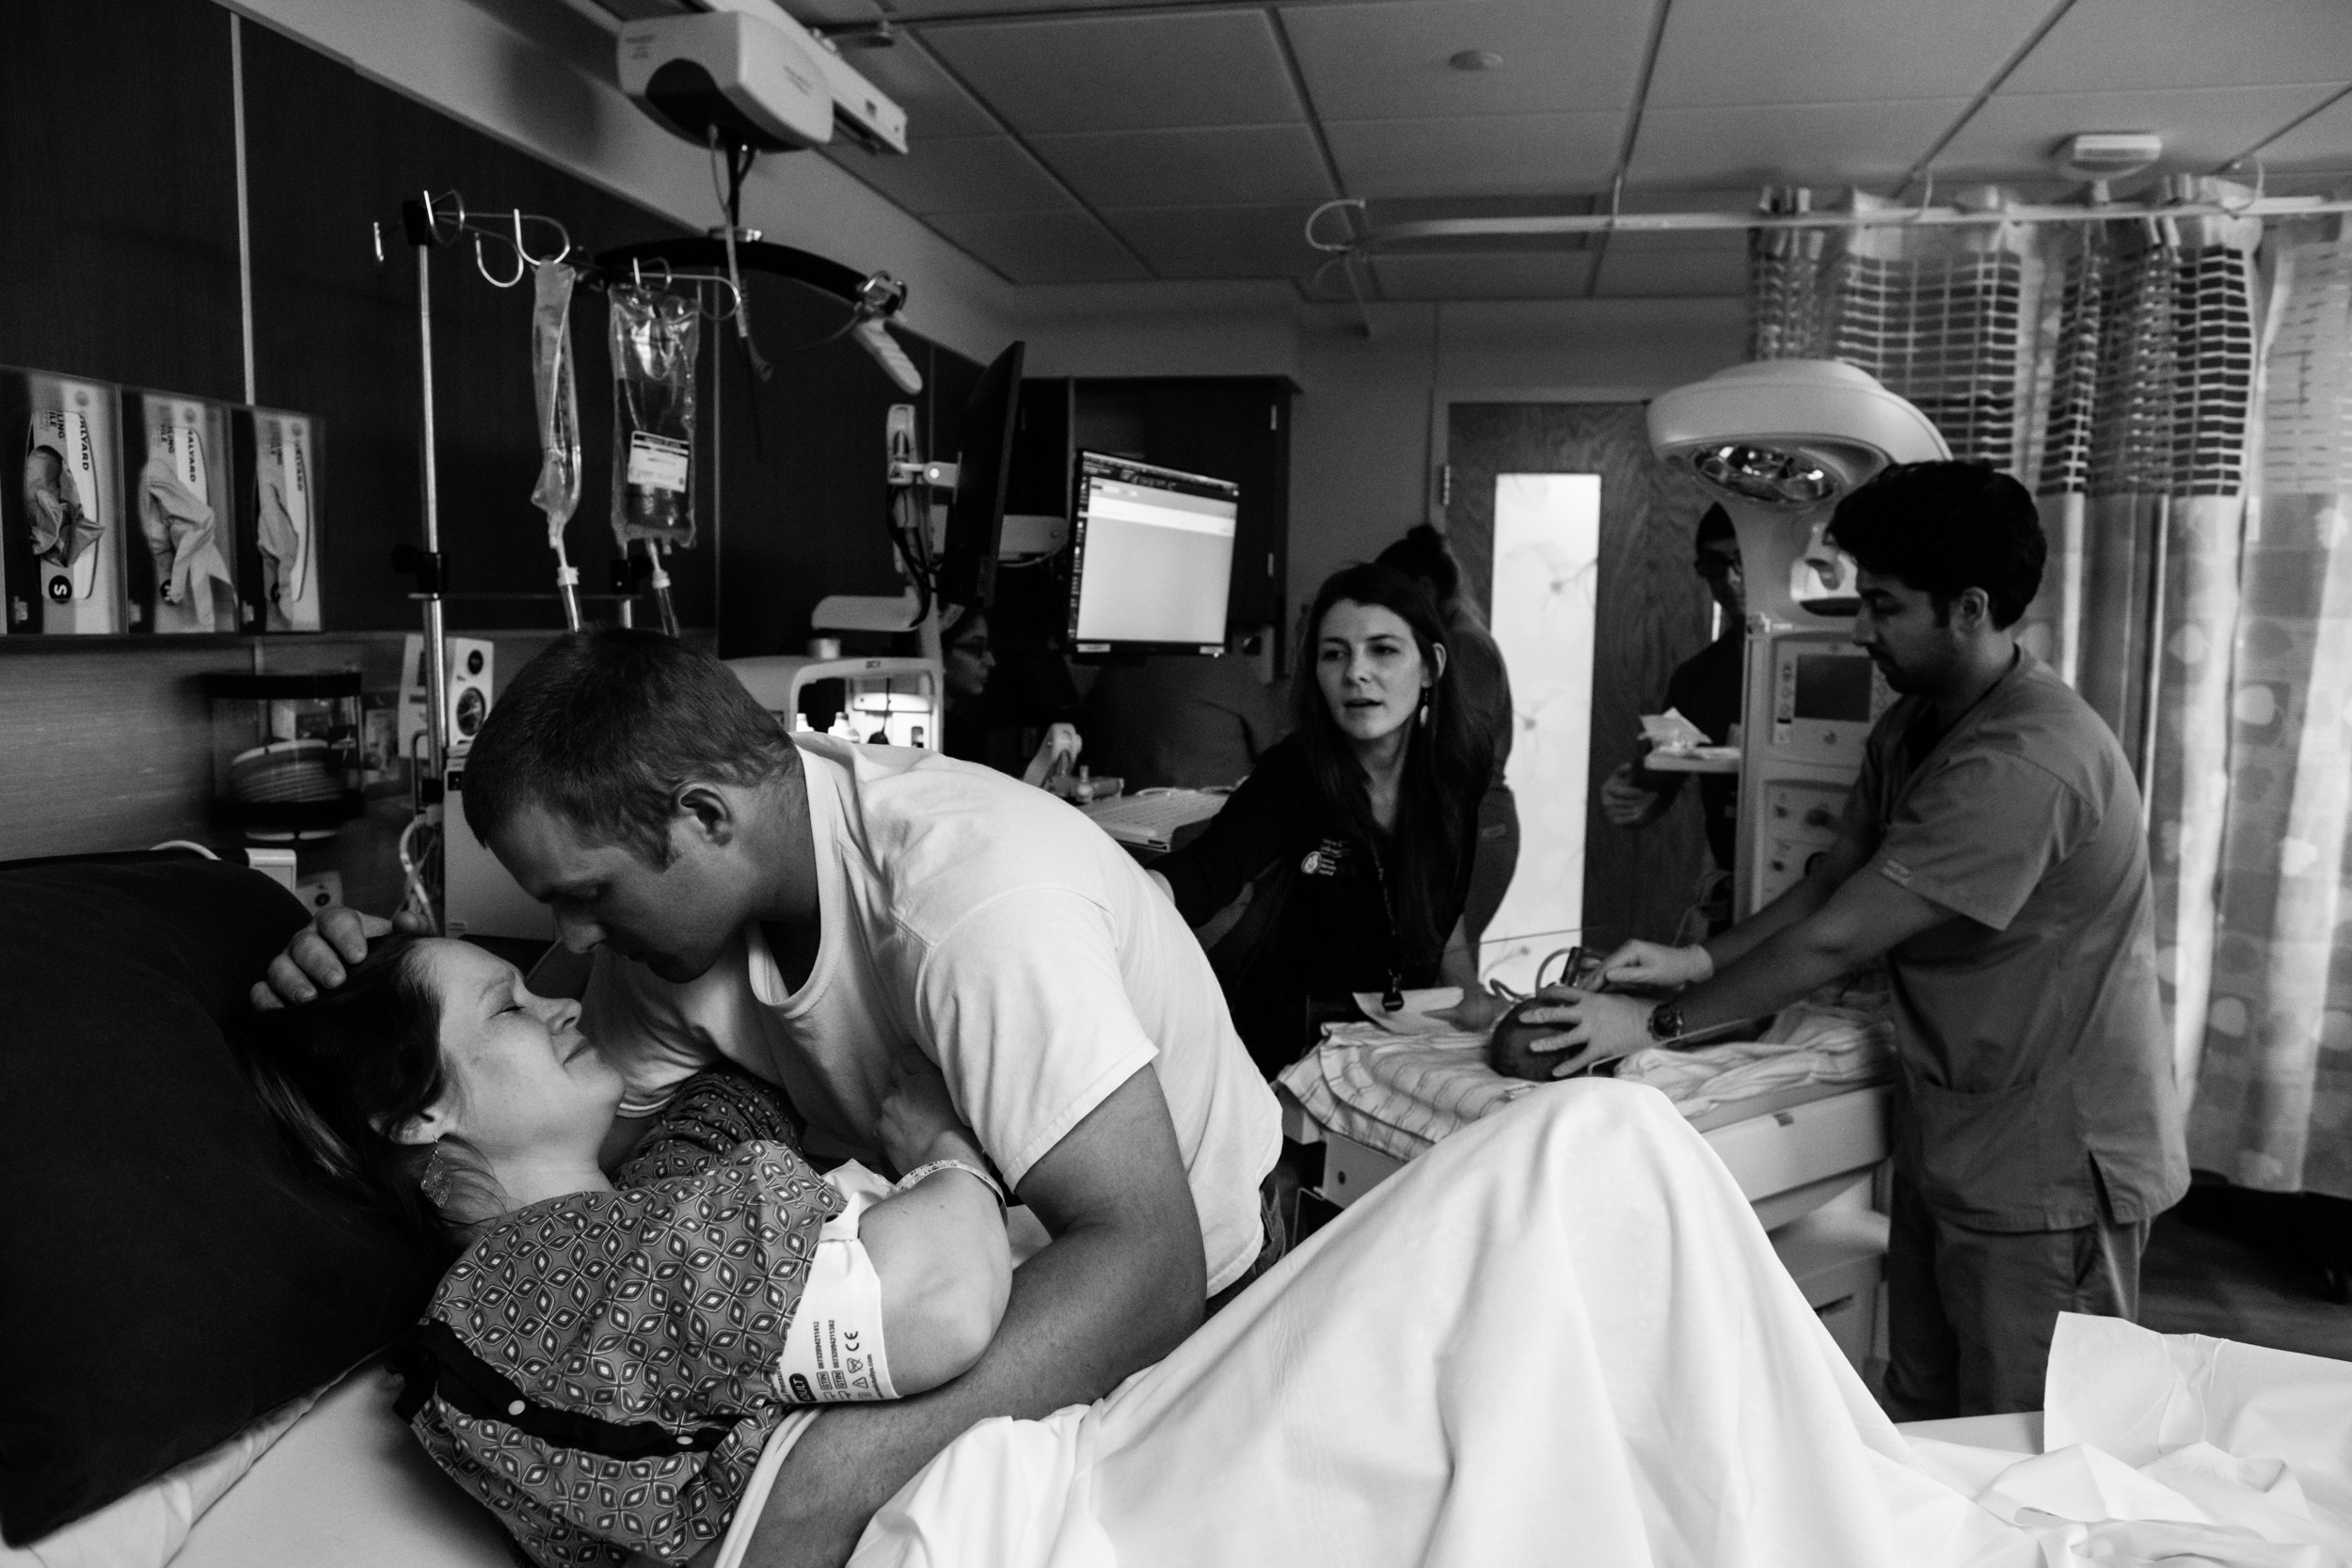 husband and wife comforting each other while baby being brought over so they could see him